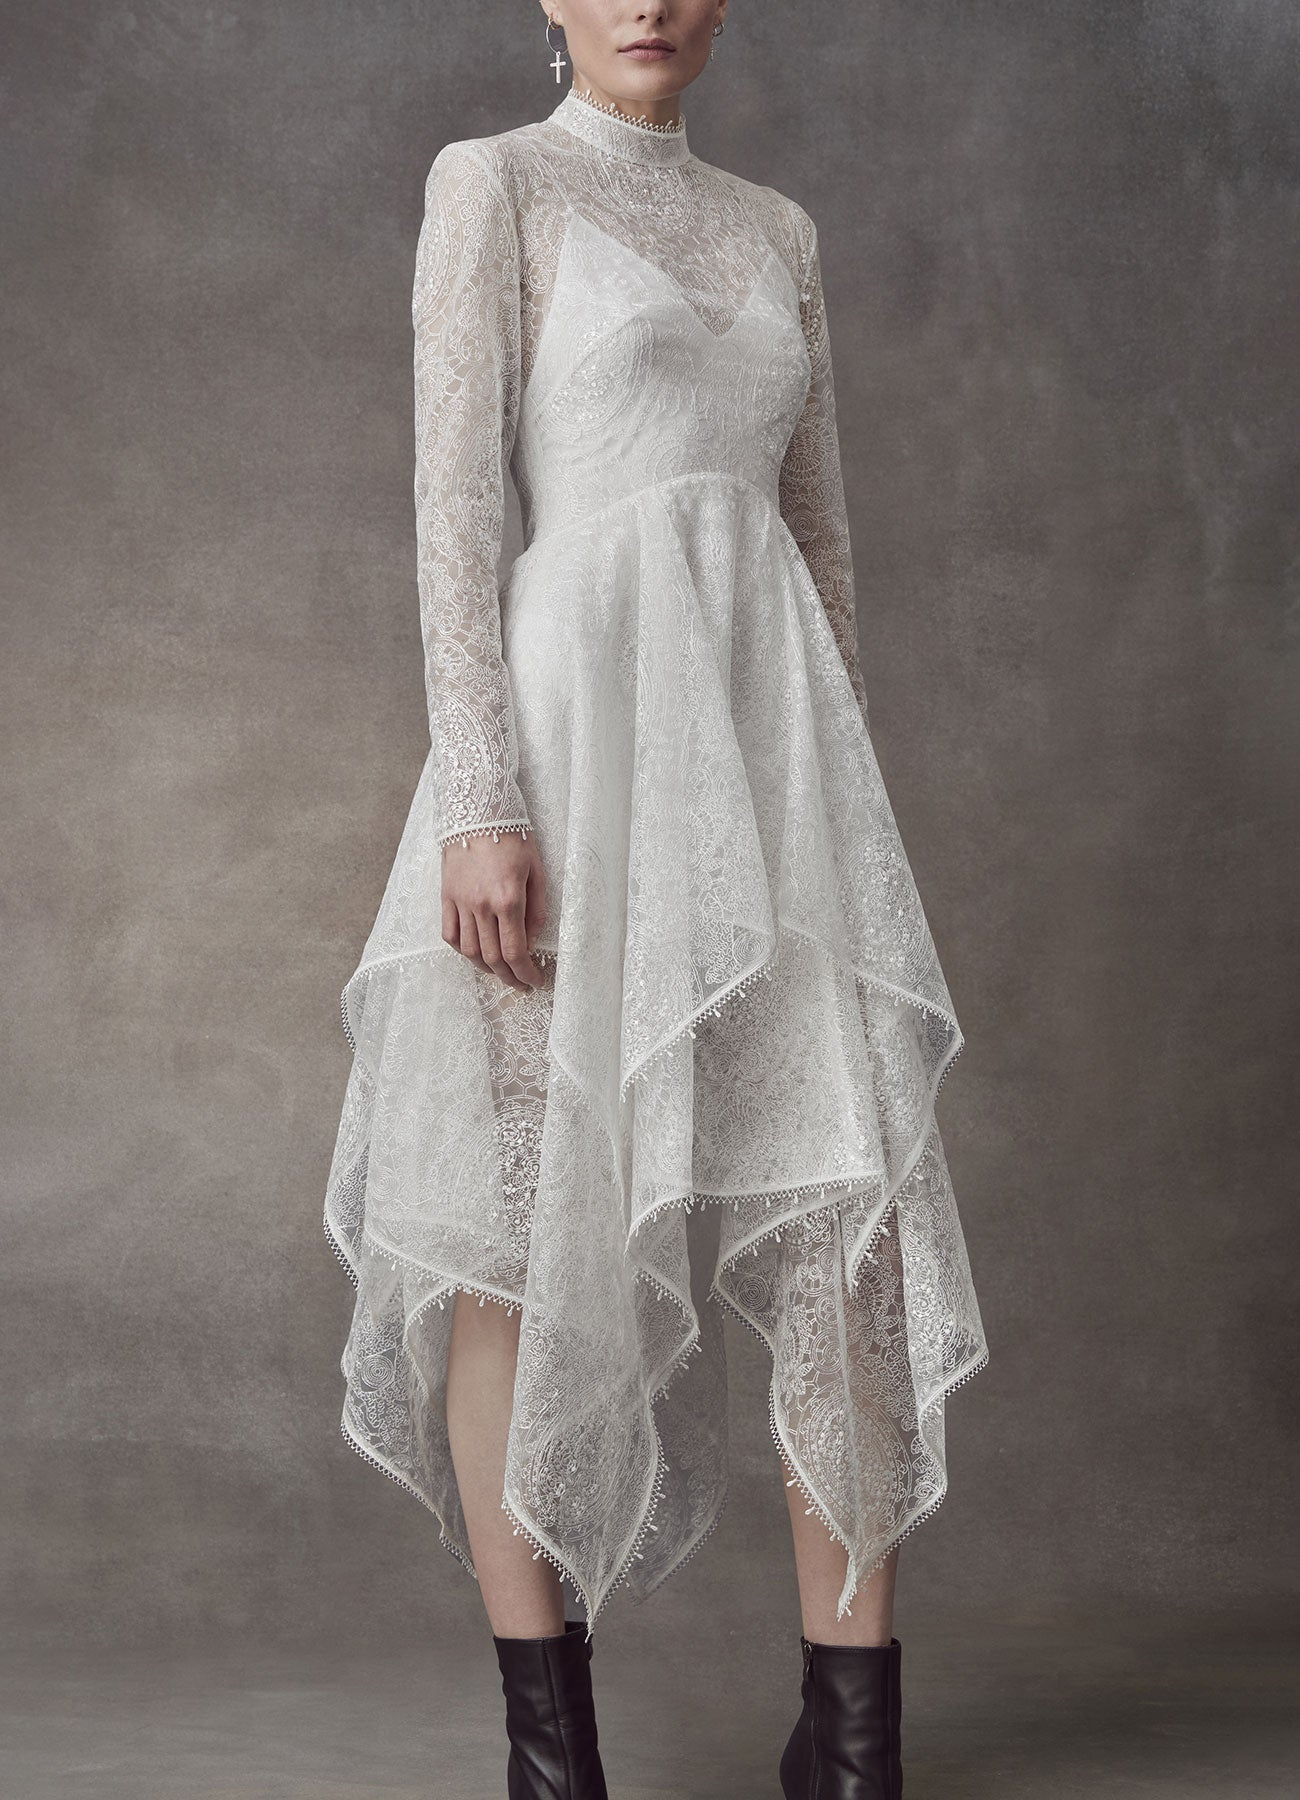 Serenity Lace Handkerchief dress